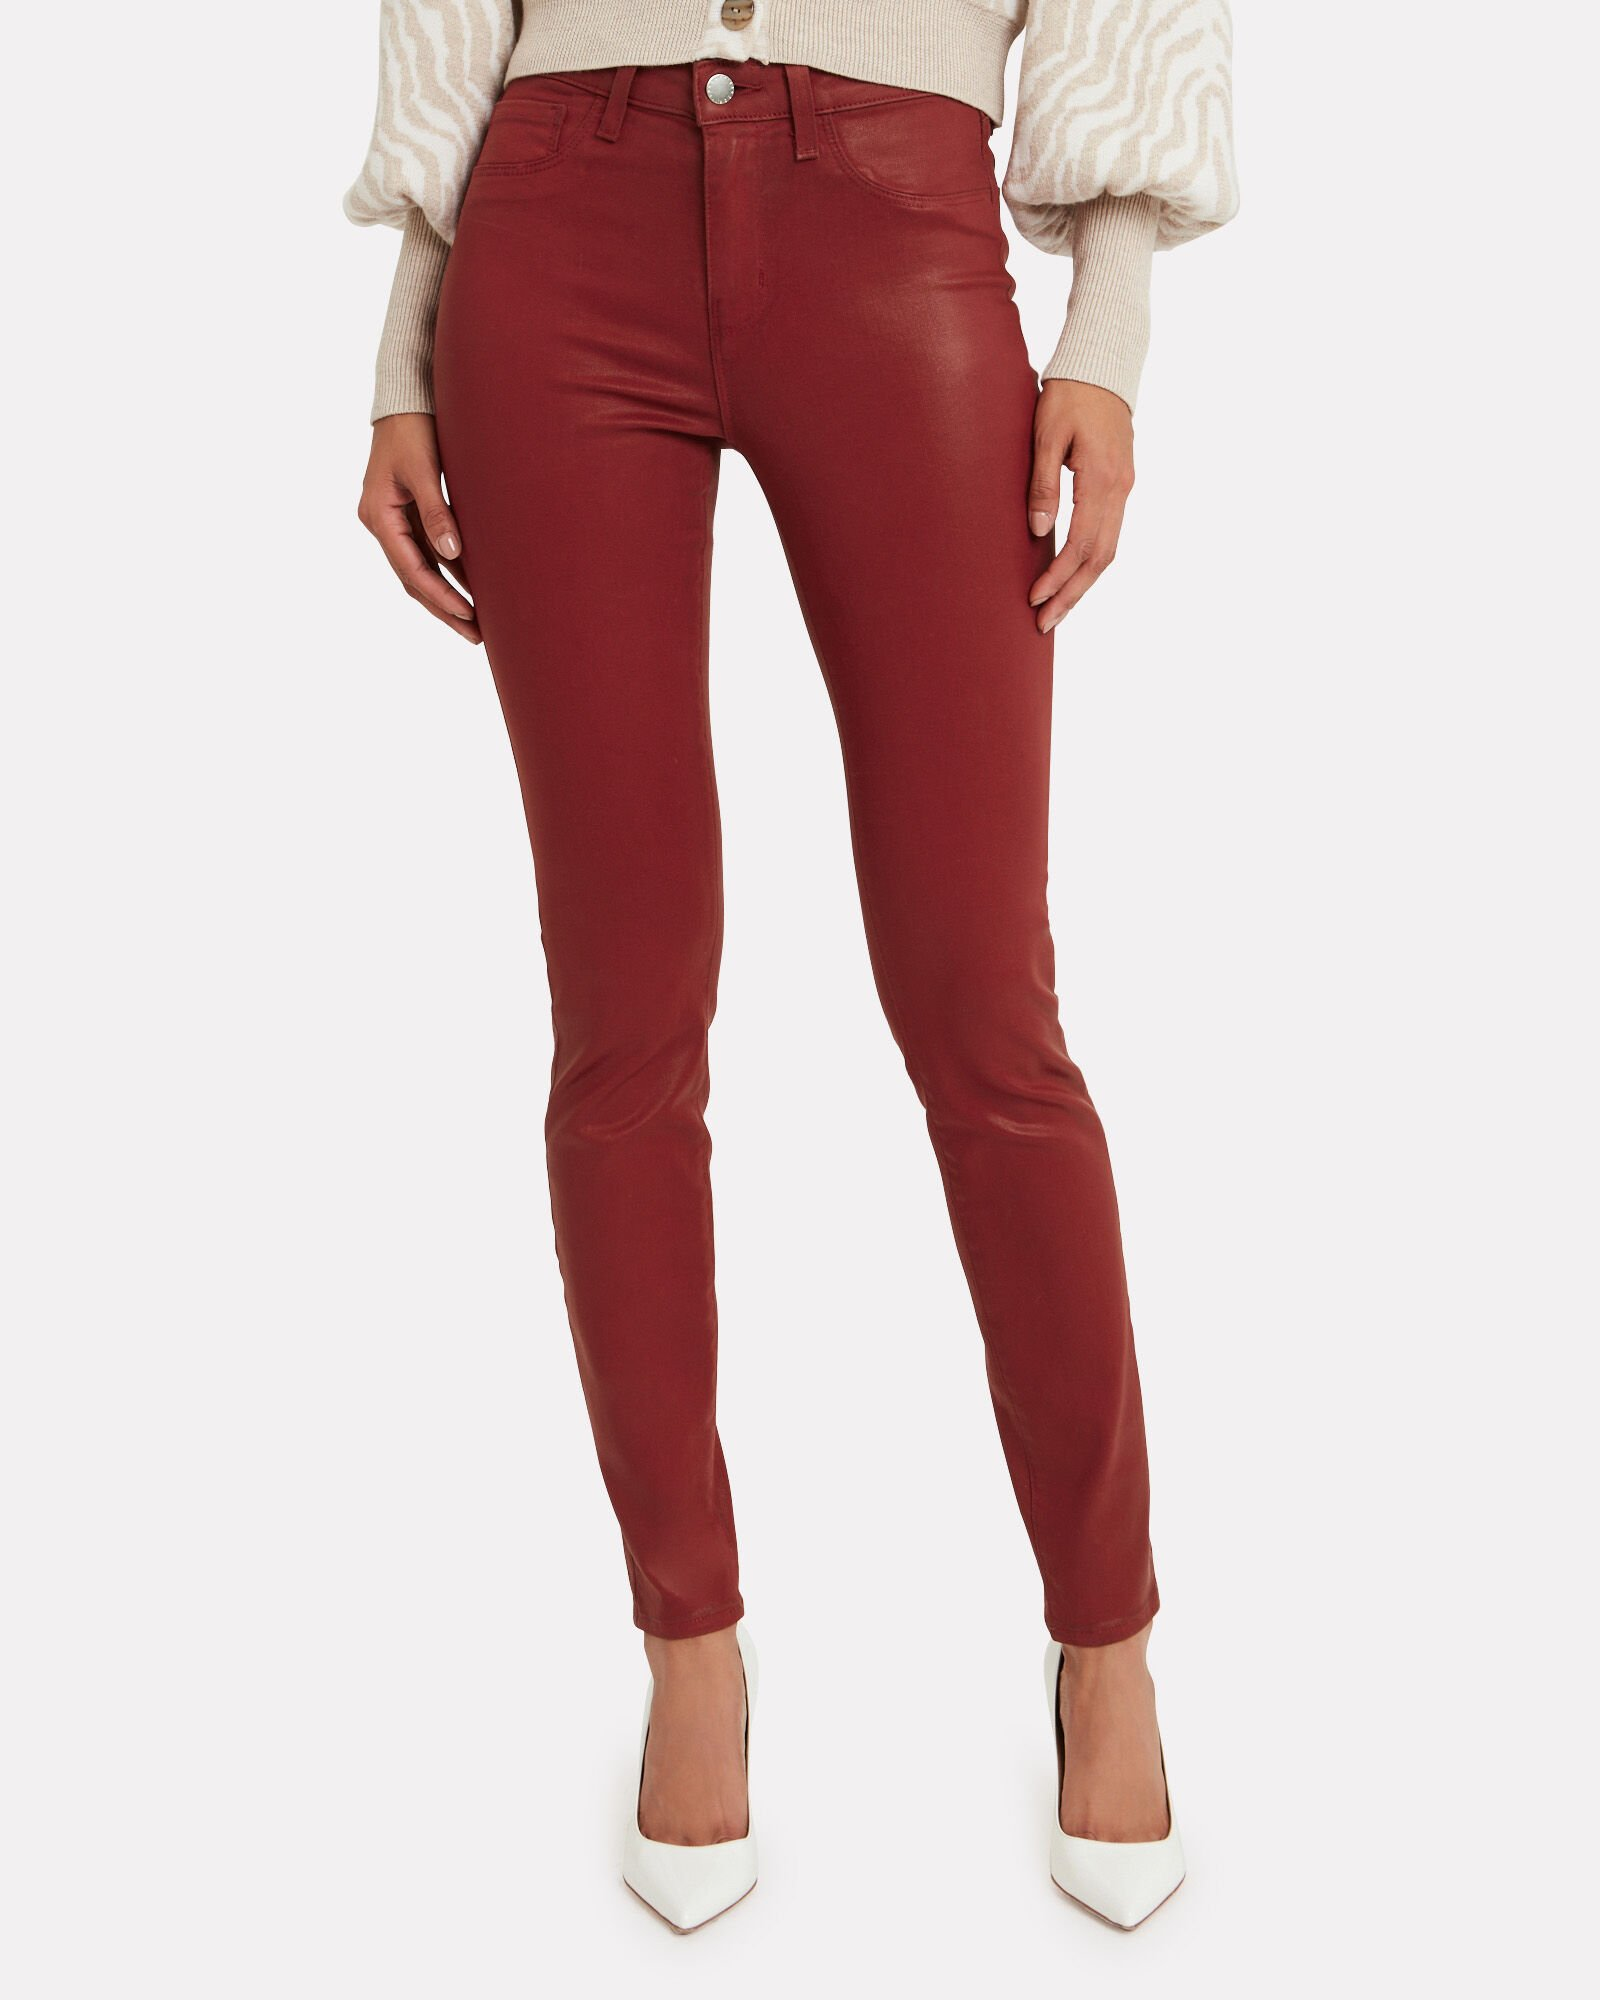 Margot Coated Skinny Jeans, RED, hi-res